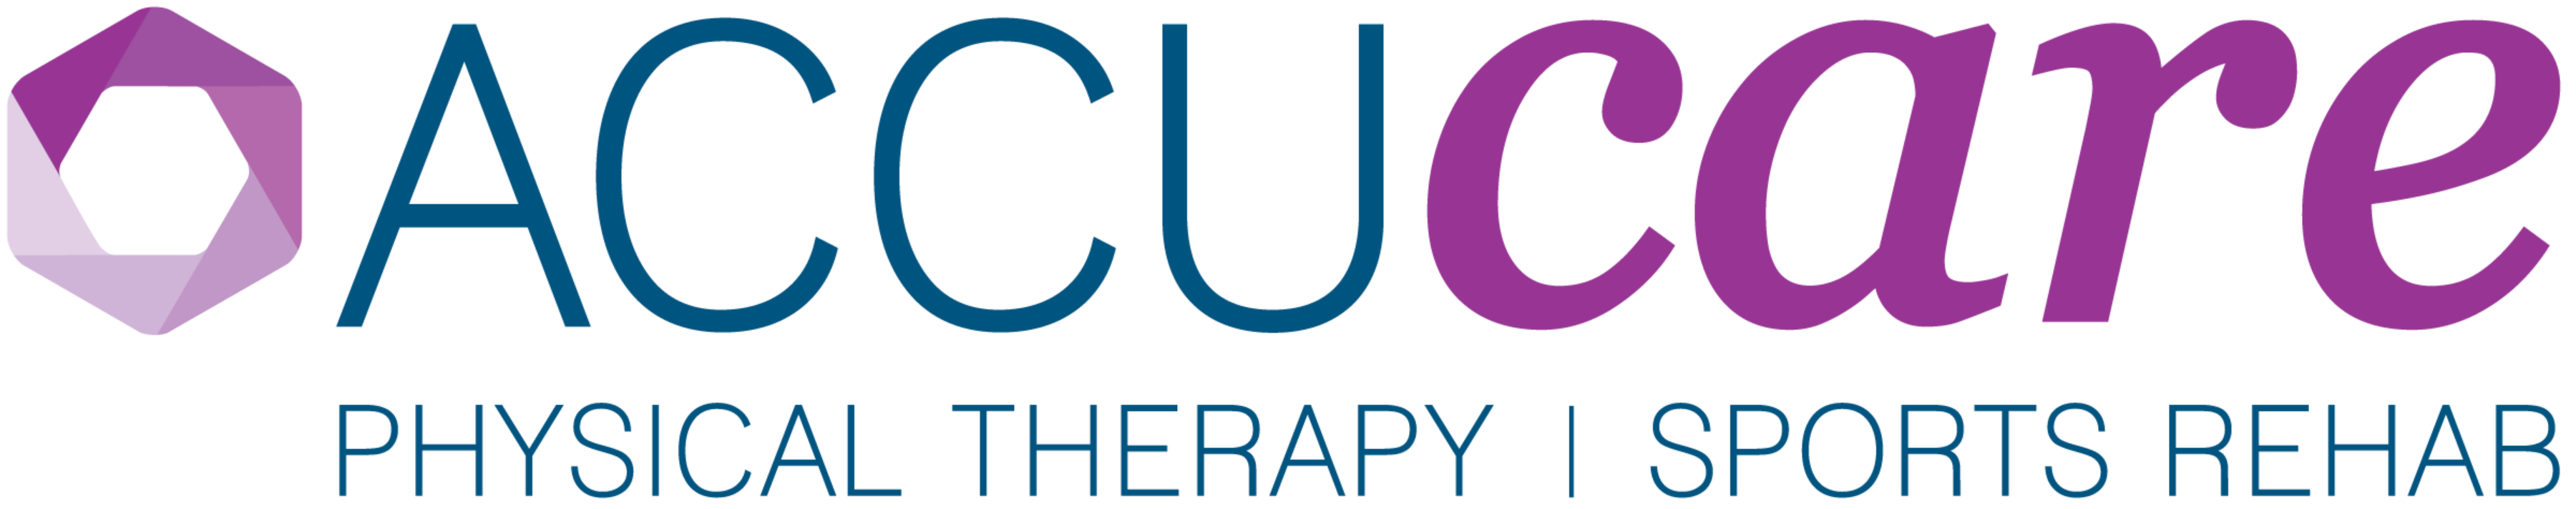 Therapy Care in Batavia, IL Announces Merger with AccuCare